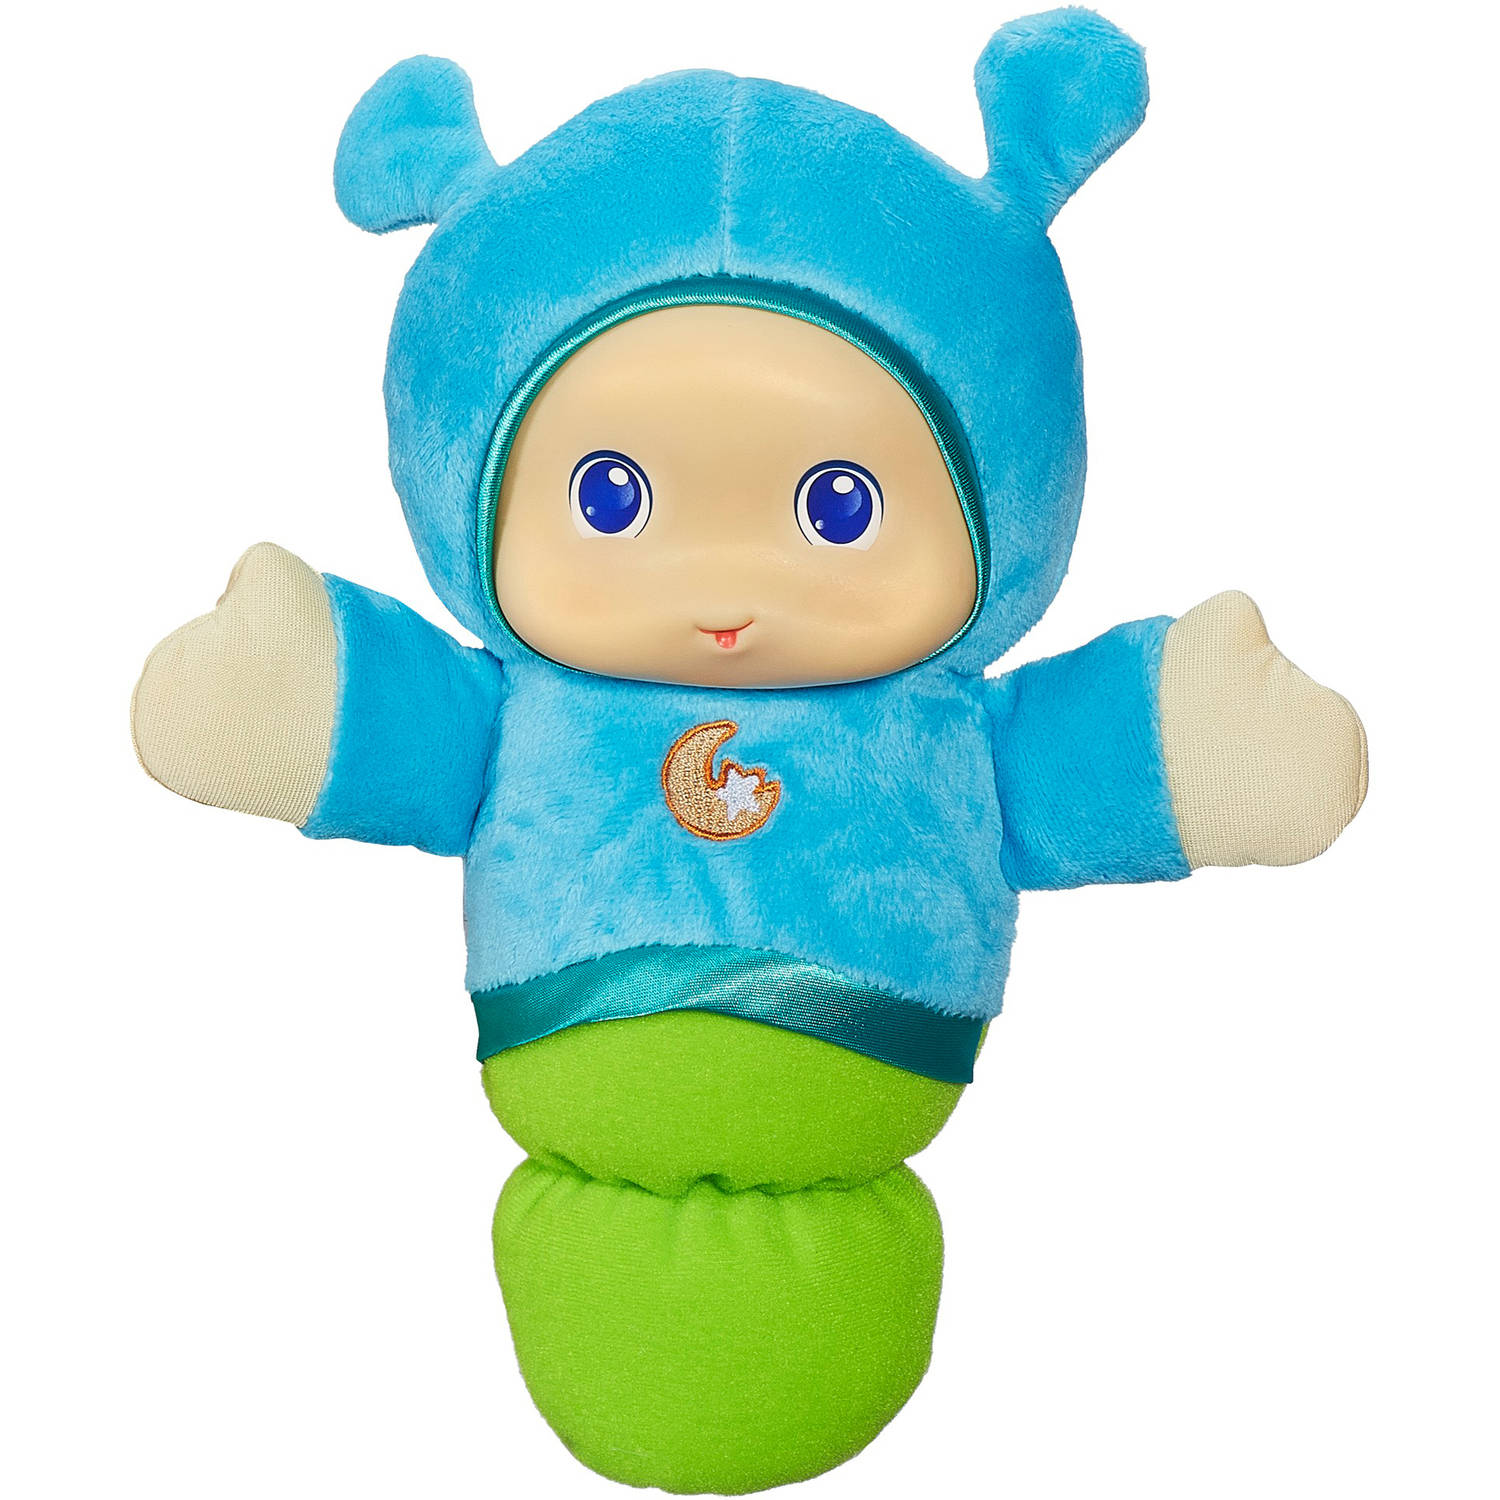 Playskool Play Favorites Lullaby Gloworm Toy, Blue